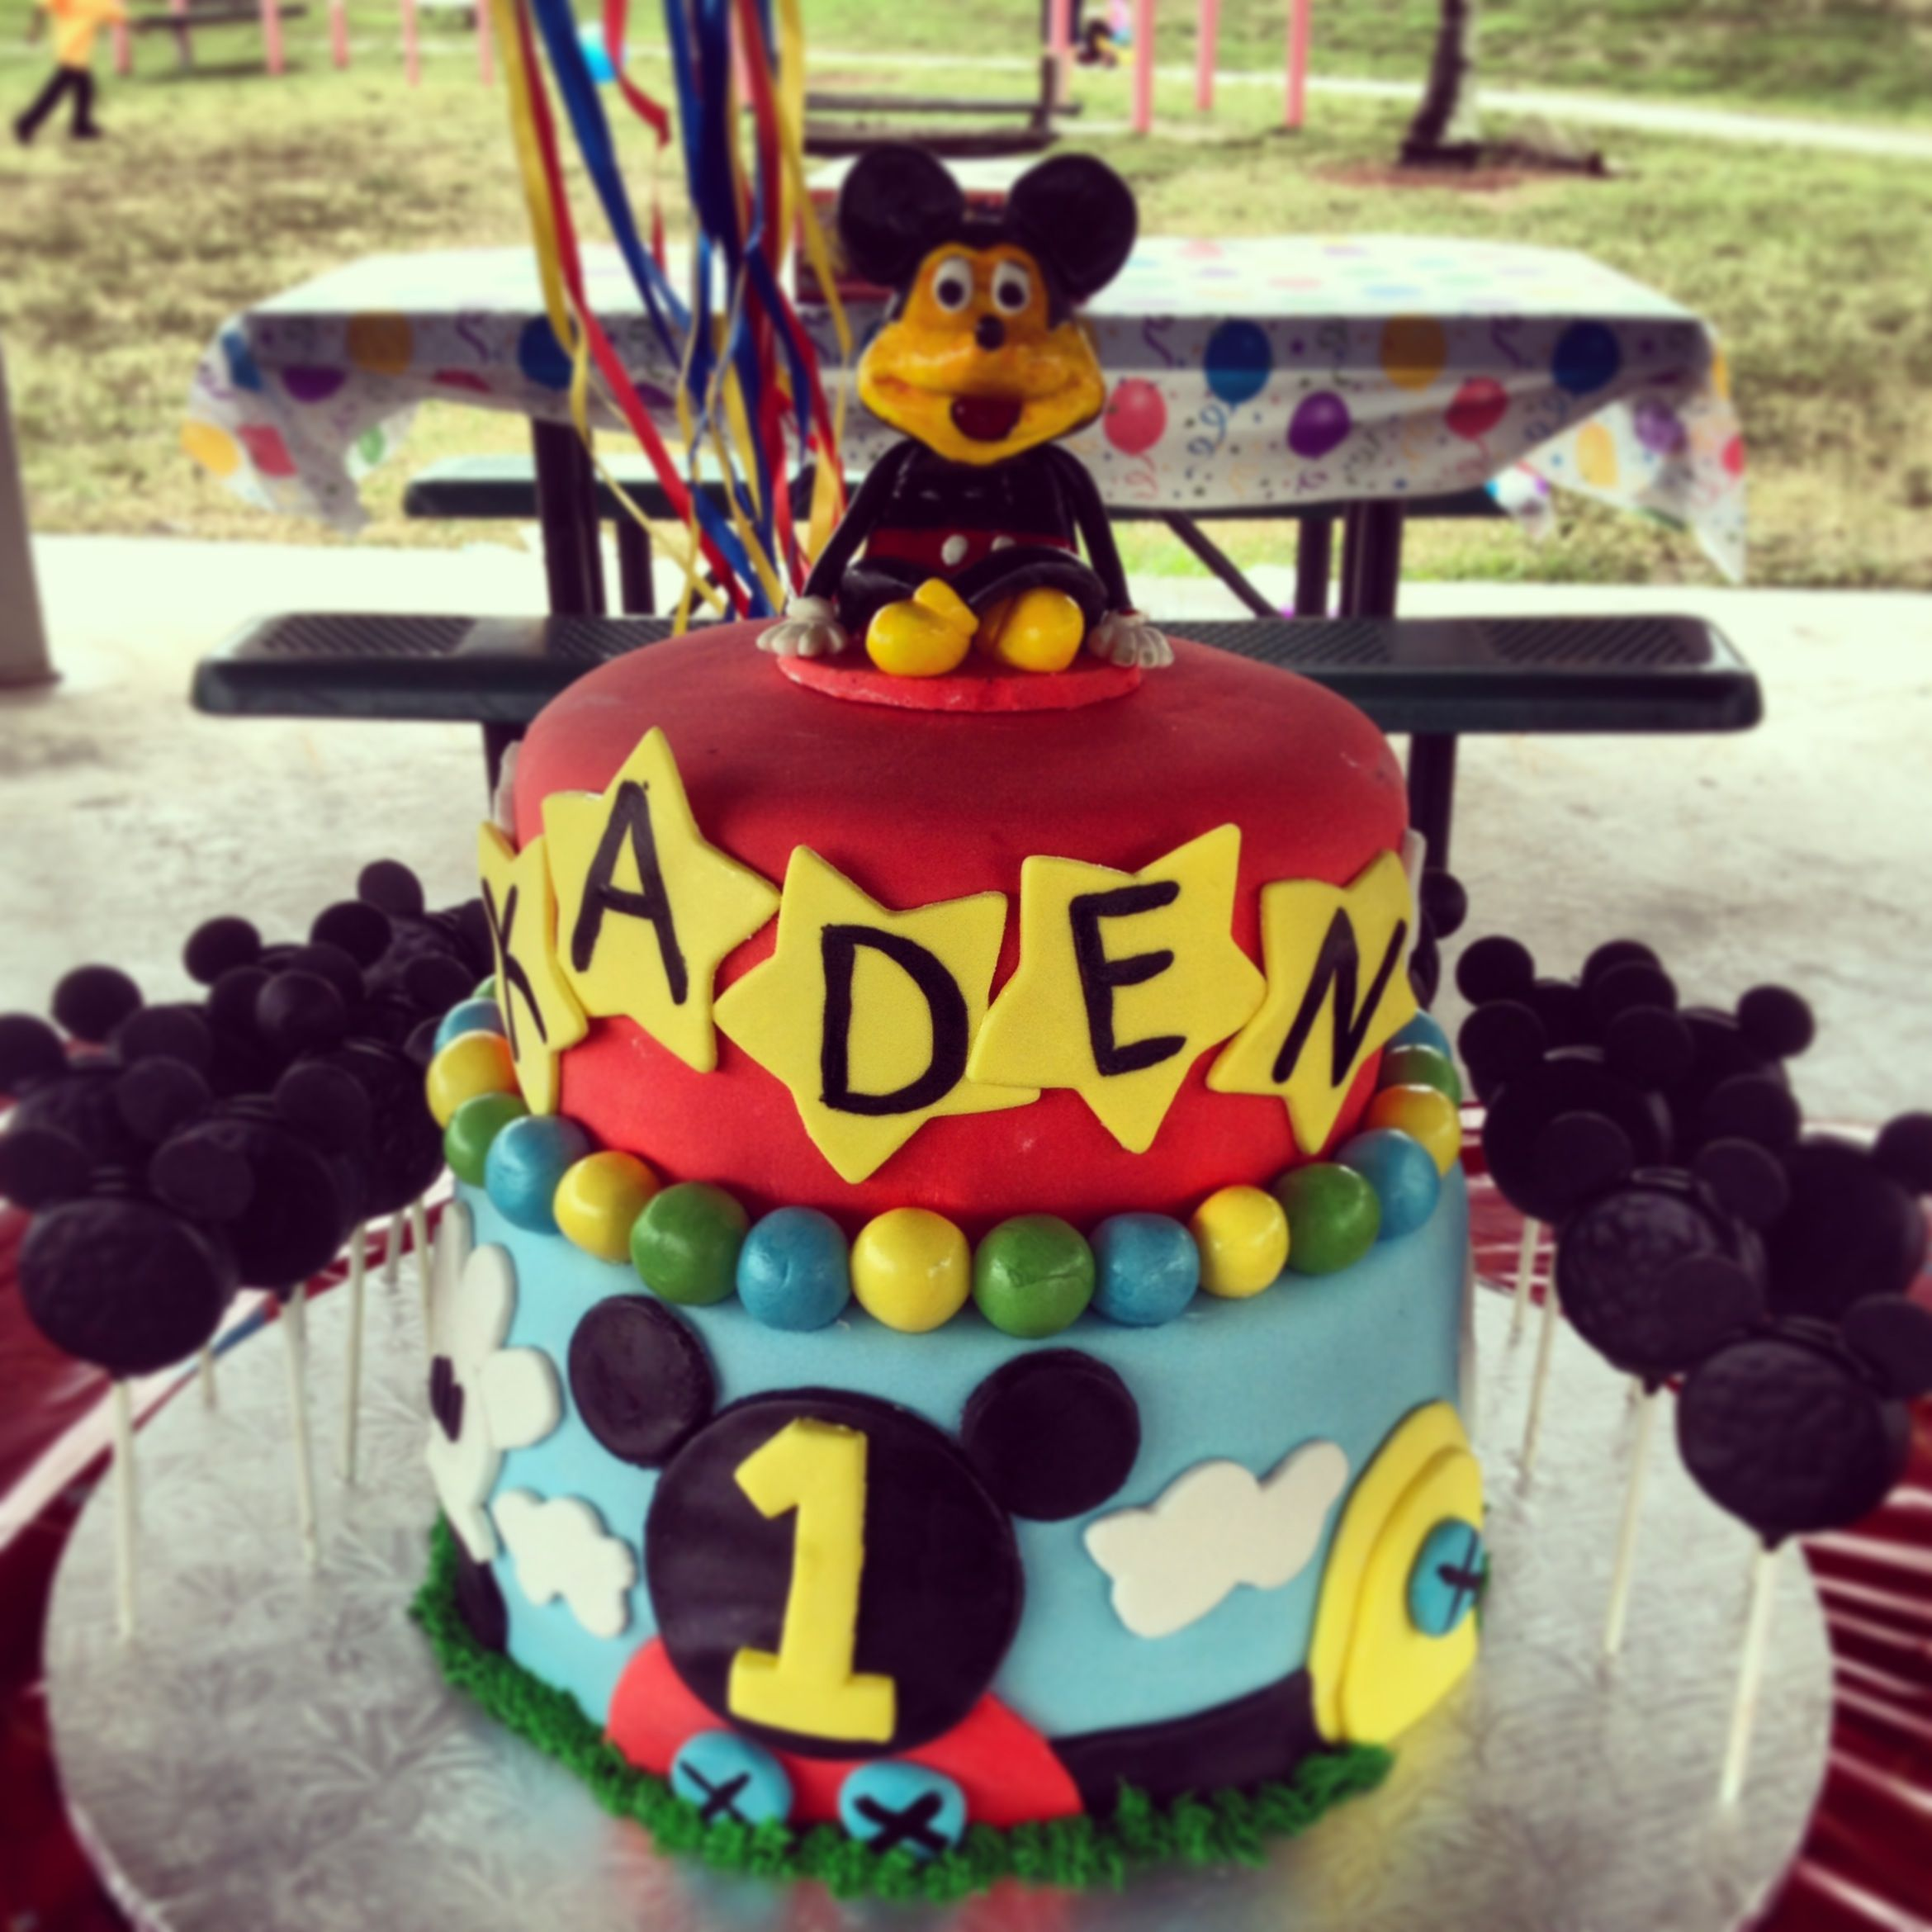 Mickey mouse cake decorations from scratch all handmade and homemade